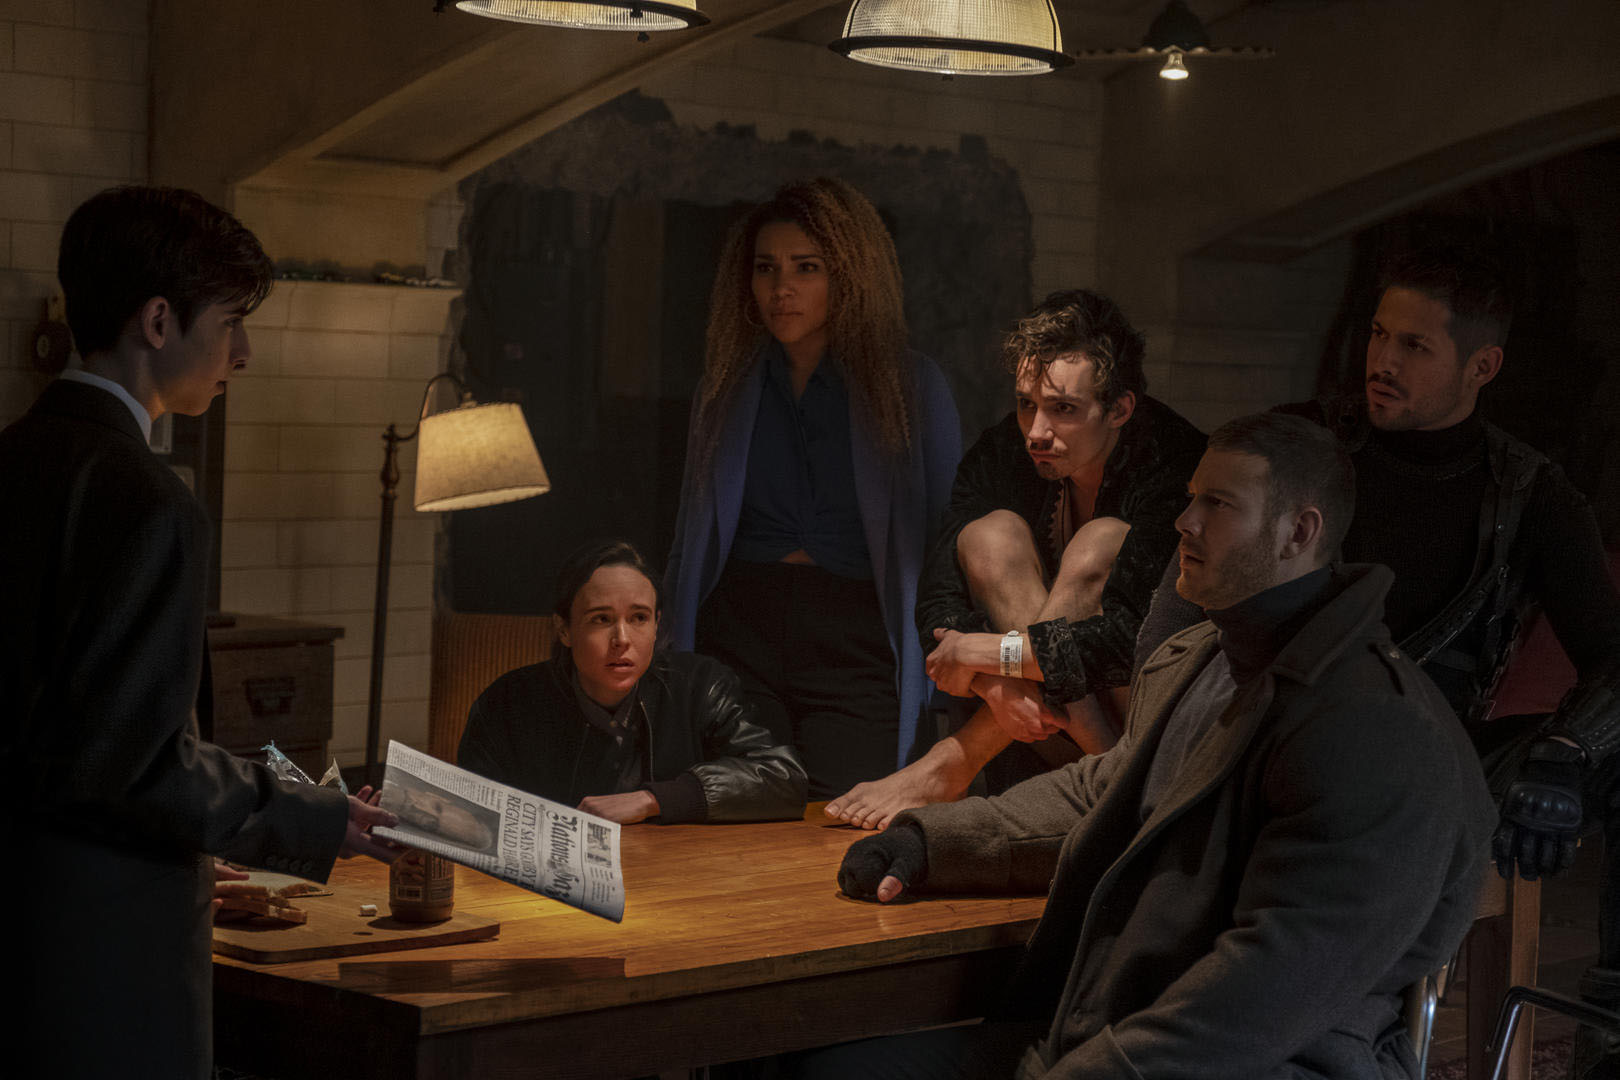 Netflix Sets a Date For The Umbrella Academy, Debuts First Pictures